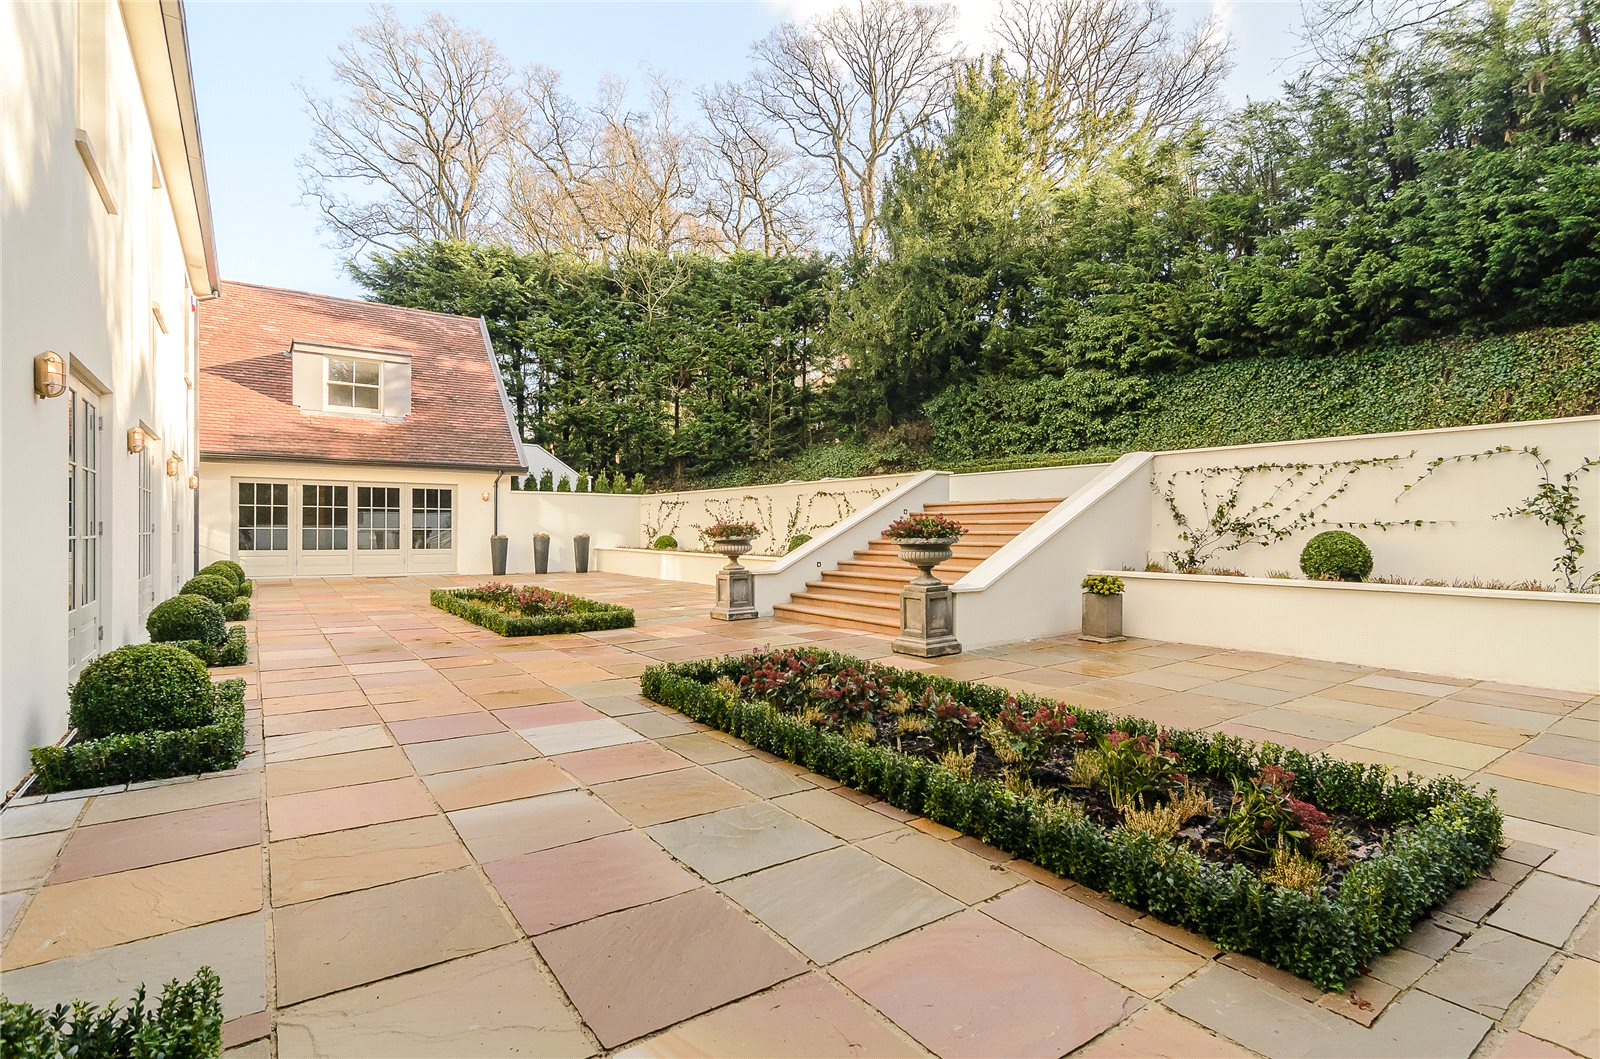 Additional photo for property listing at Camp Road, Gerrards Cross, Buckinghamshire, SL9 Gerrards Cross, Αγγλια